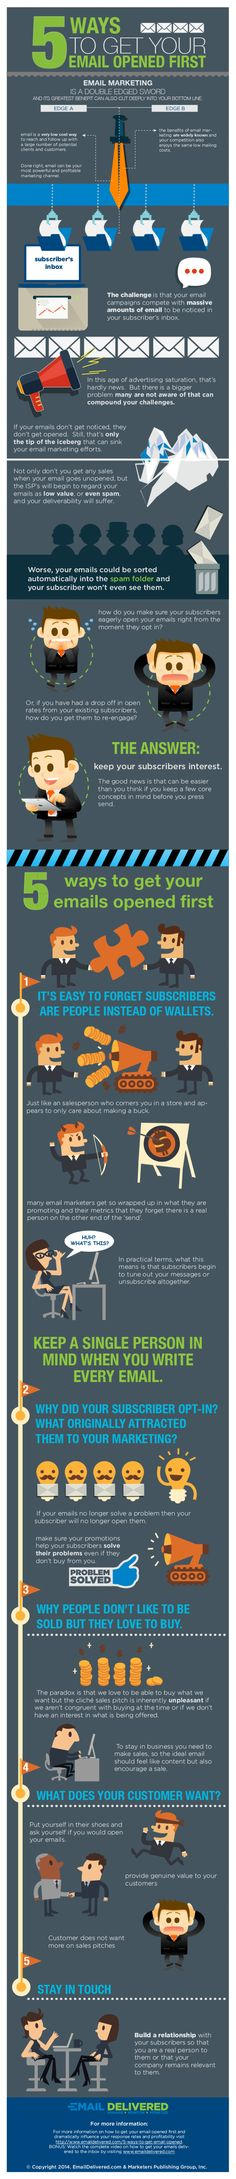 5 Ways to Get Your #Email Opened First #infografía